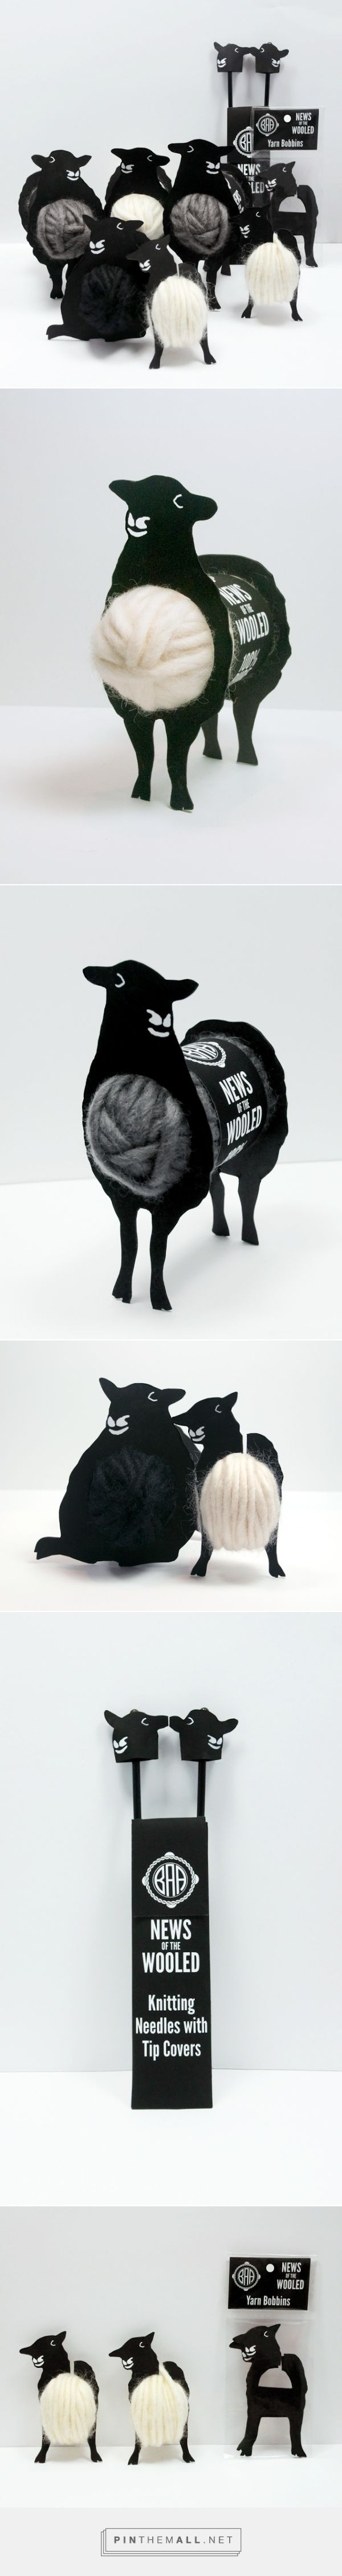 http://www.packagingoftheworld.com/2015/04/news-of-wooled-introduction-to-knitting.html